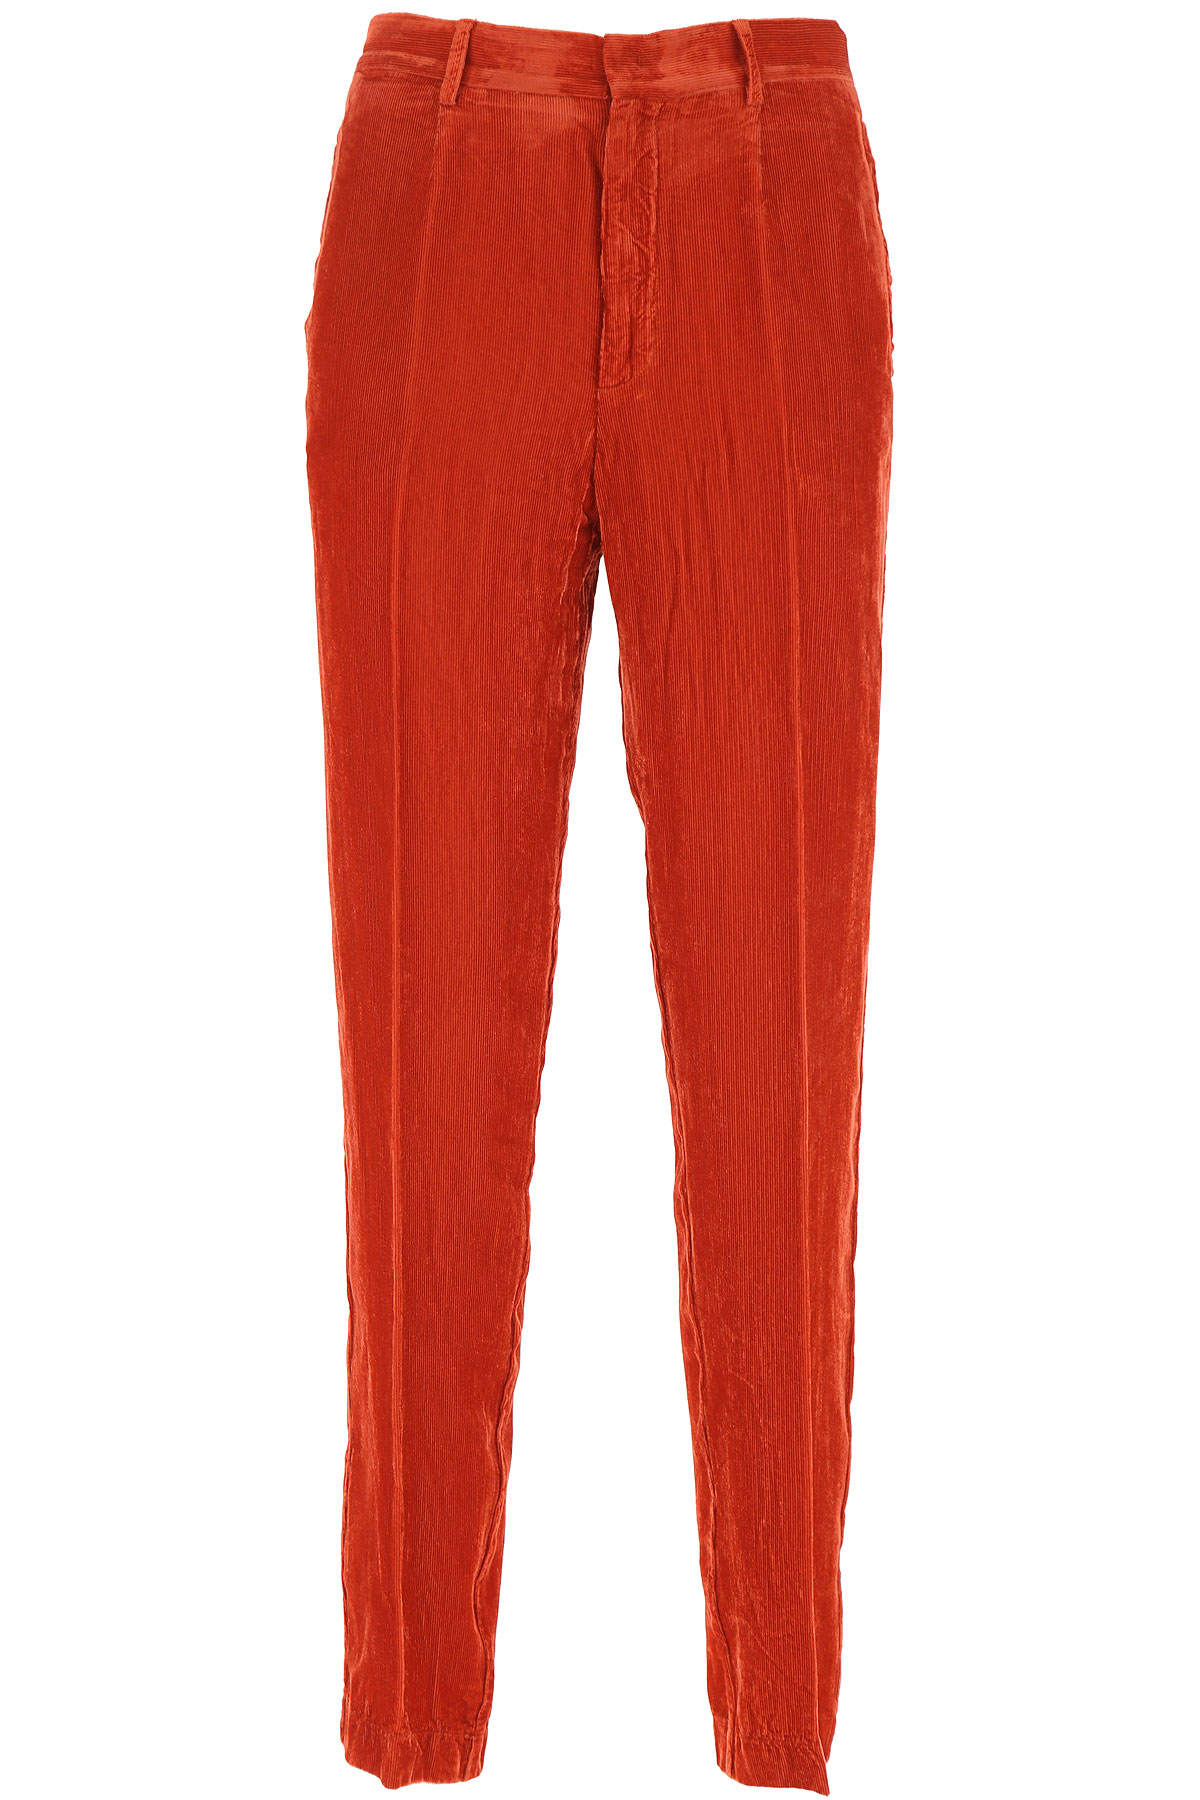 Forte Forte Pants for Women On Sale, Cameo, Viscose, 2019, 00 - XXS - IT 36